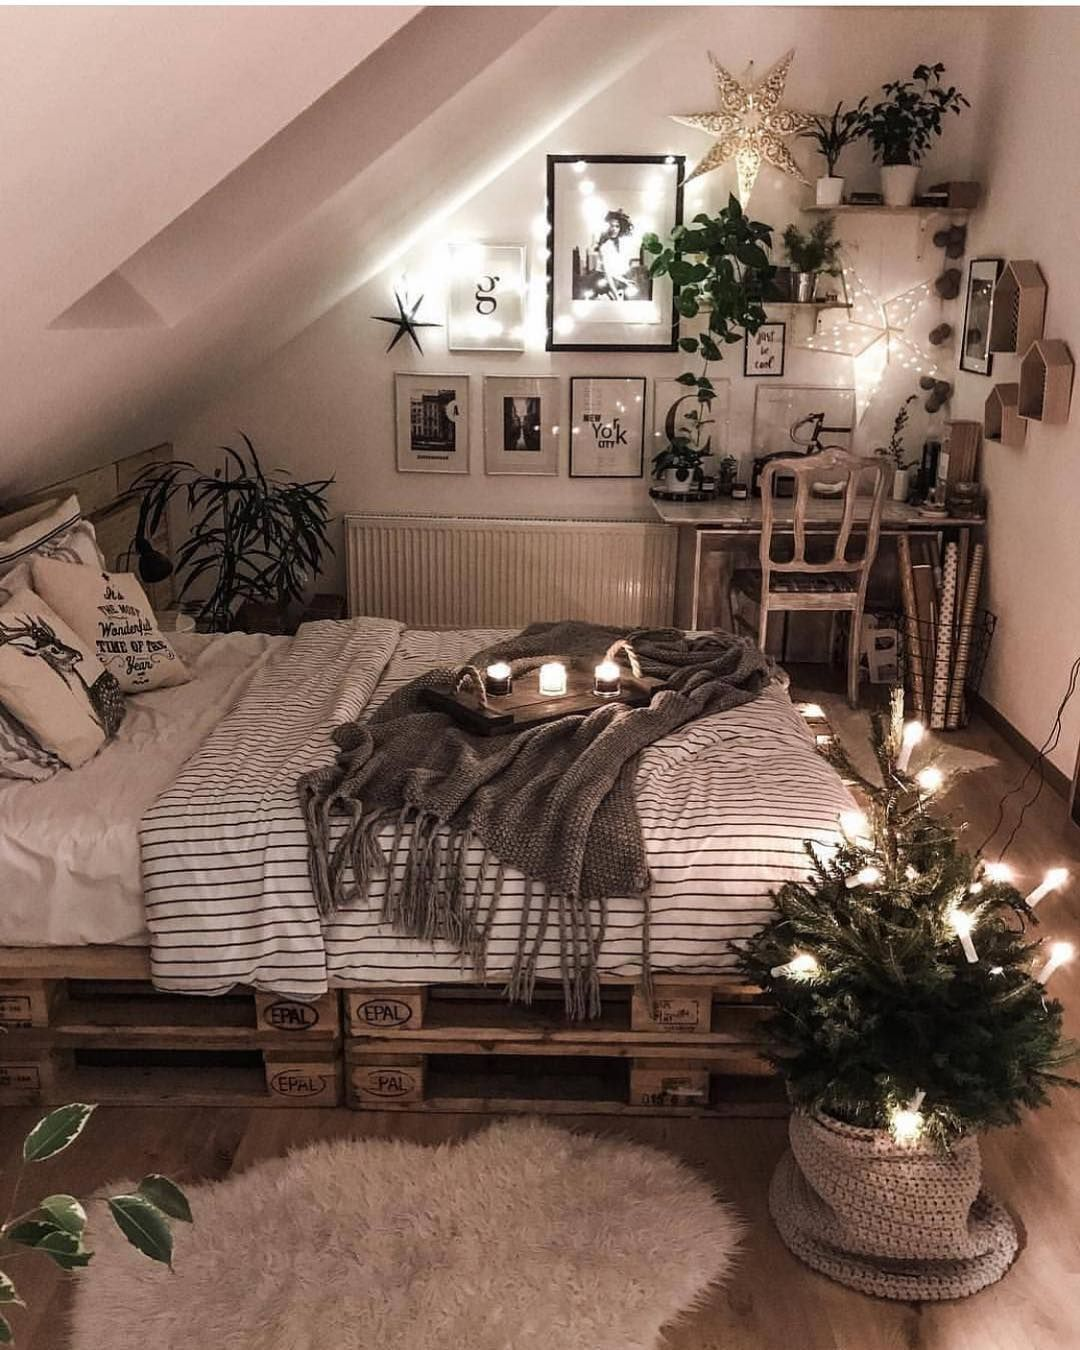 Cozy Boho bedroom inspiration for your Monday! What's your ... on Cozy Teenage Room Decor  id=21259